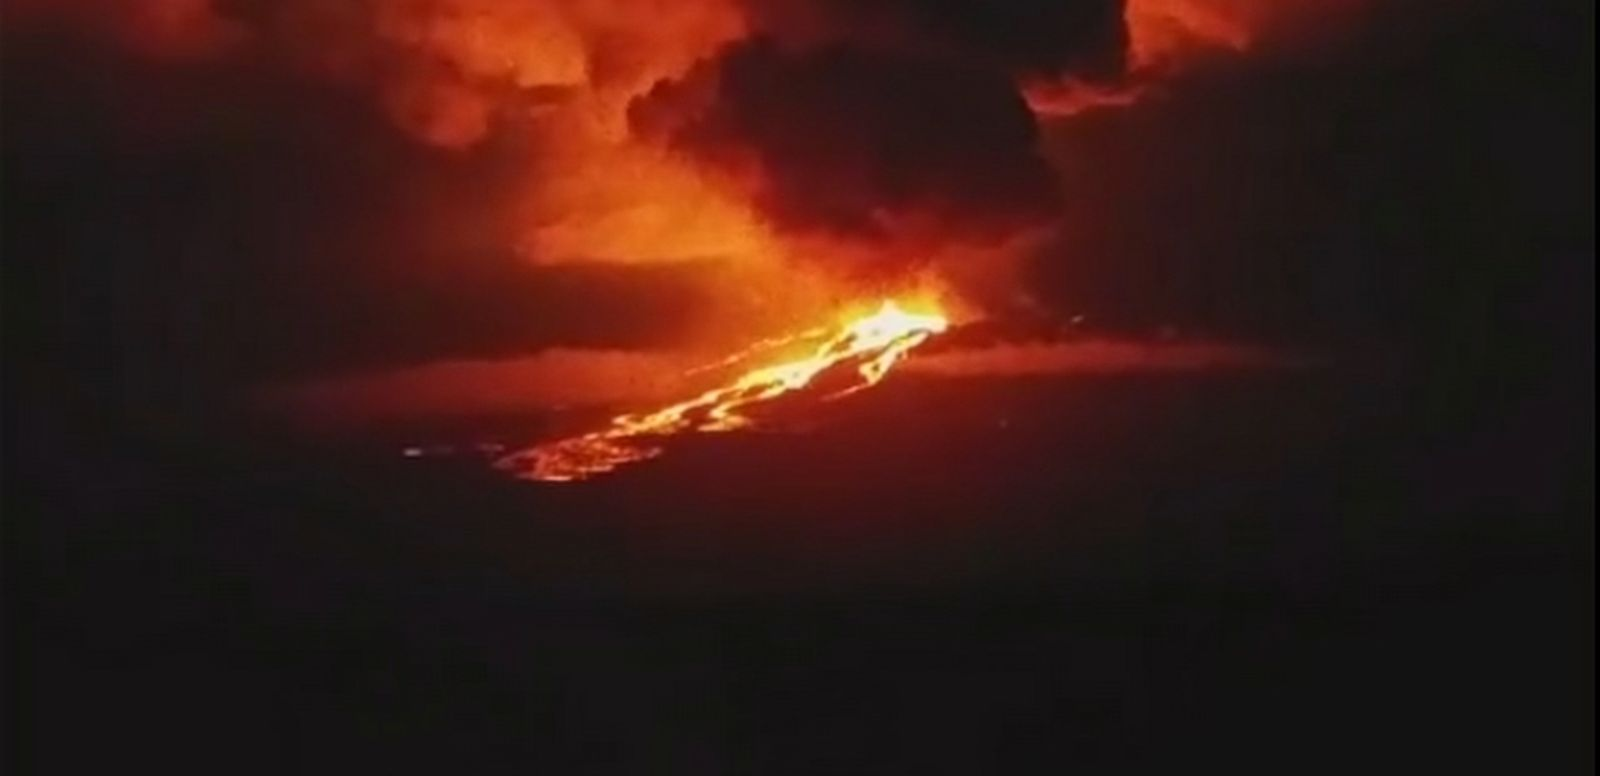 VIDEO: A volcano atop one of the Galapagos Islands has erupted for the first time in 33 years, spewing fire, smoke and lava into the night sky.